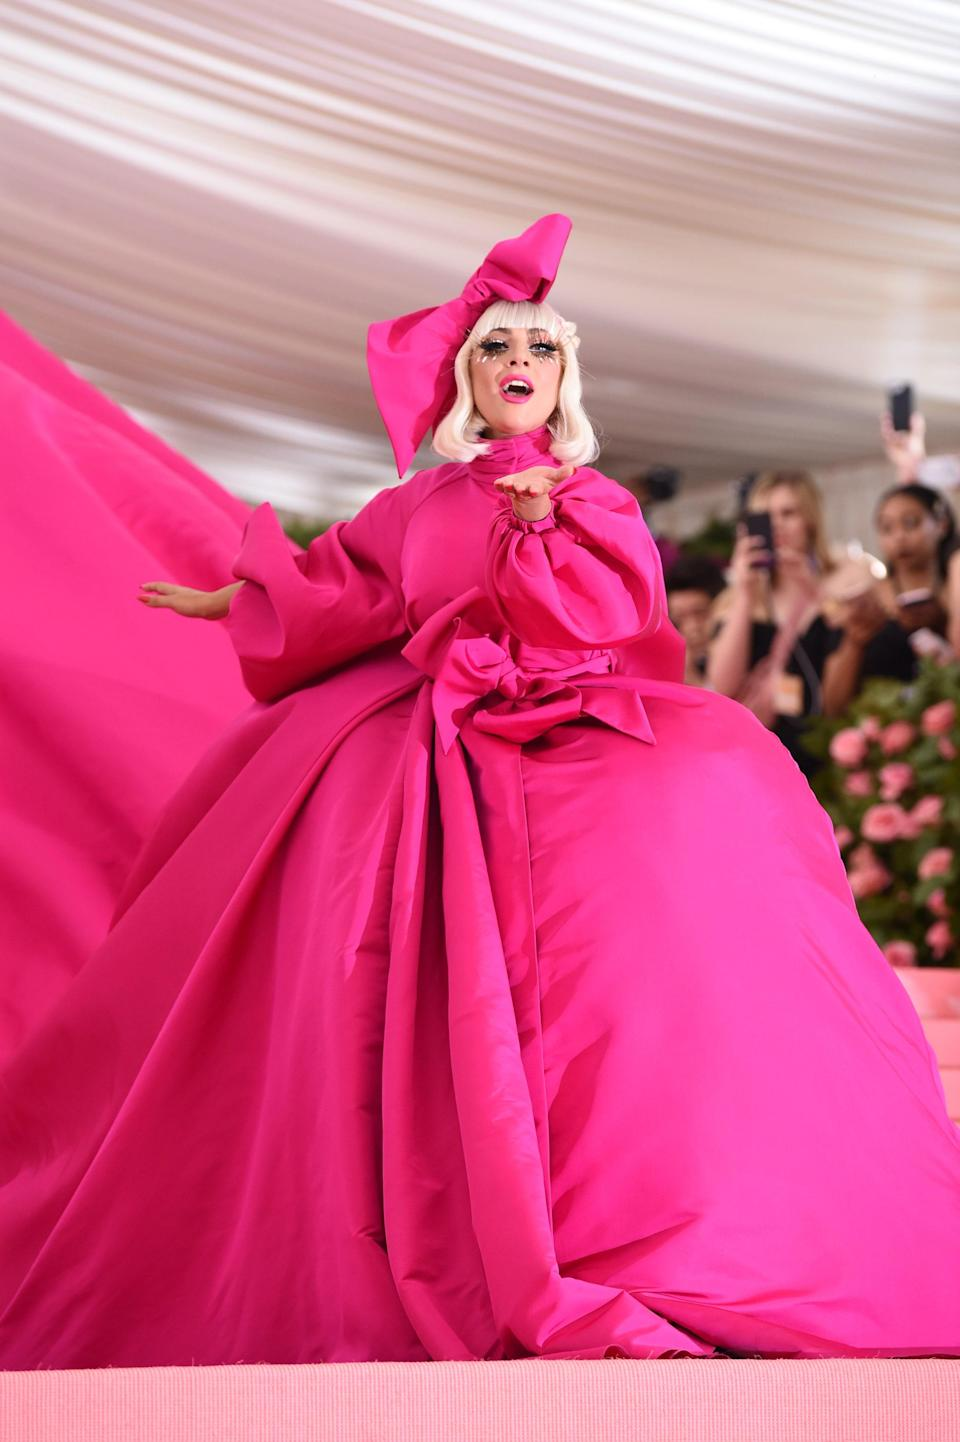 When Gaga showed up to the 2019 Met Gala in this huge dress by Brandon Maxwell, no one could expect what was underneath, or better yet, the performance that was to come. But with a theme like Camp, of course, Gaga would be the one to give it her all.